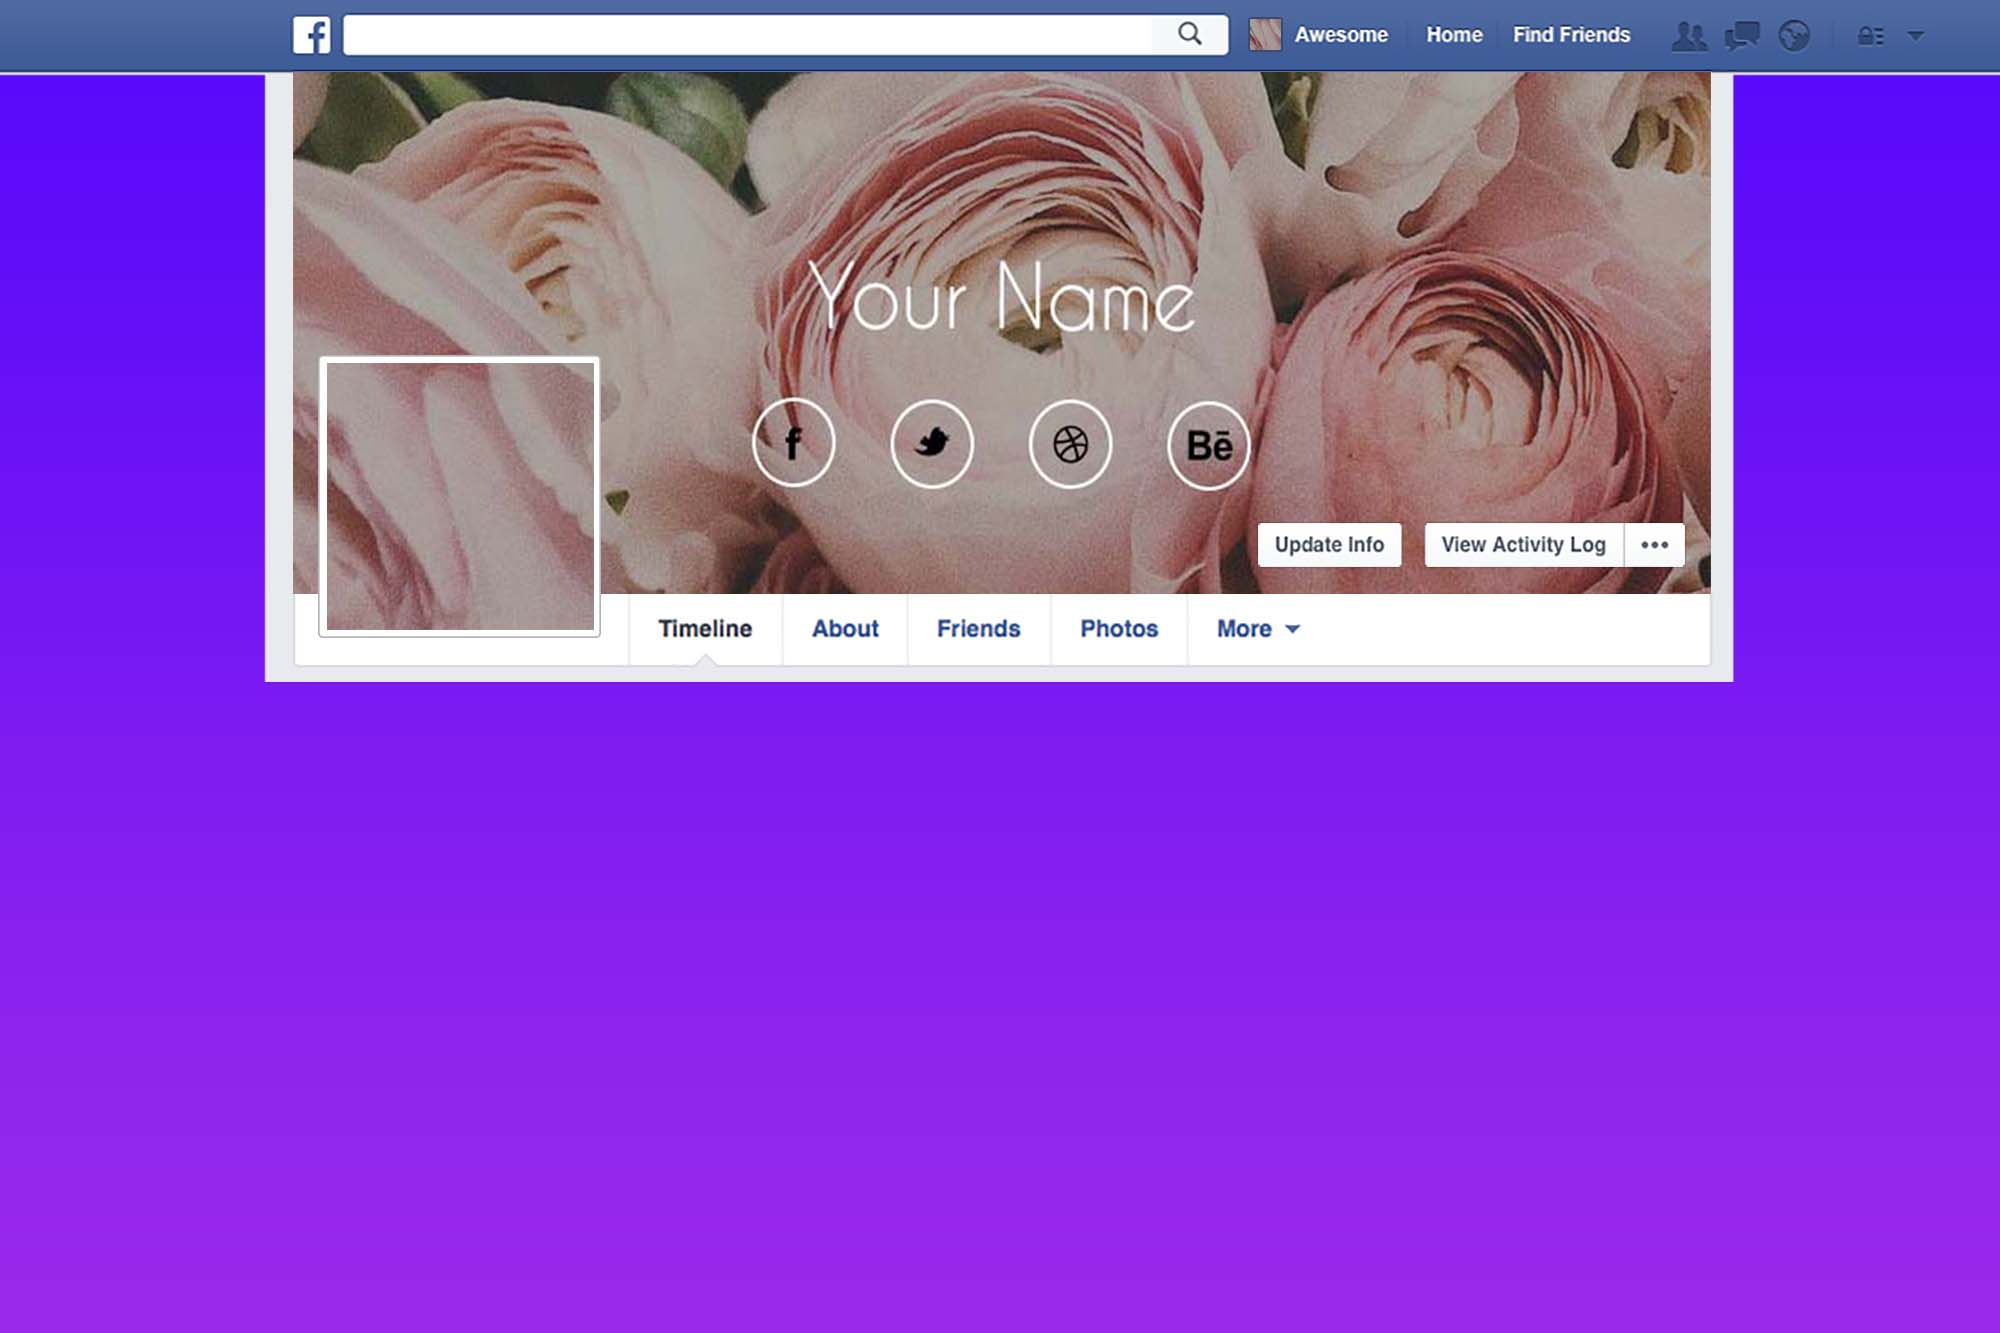 Free Flower Shop FB Page Cover Design